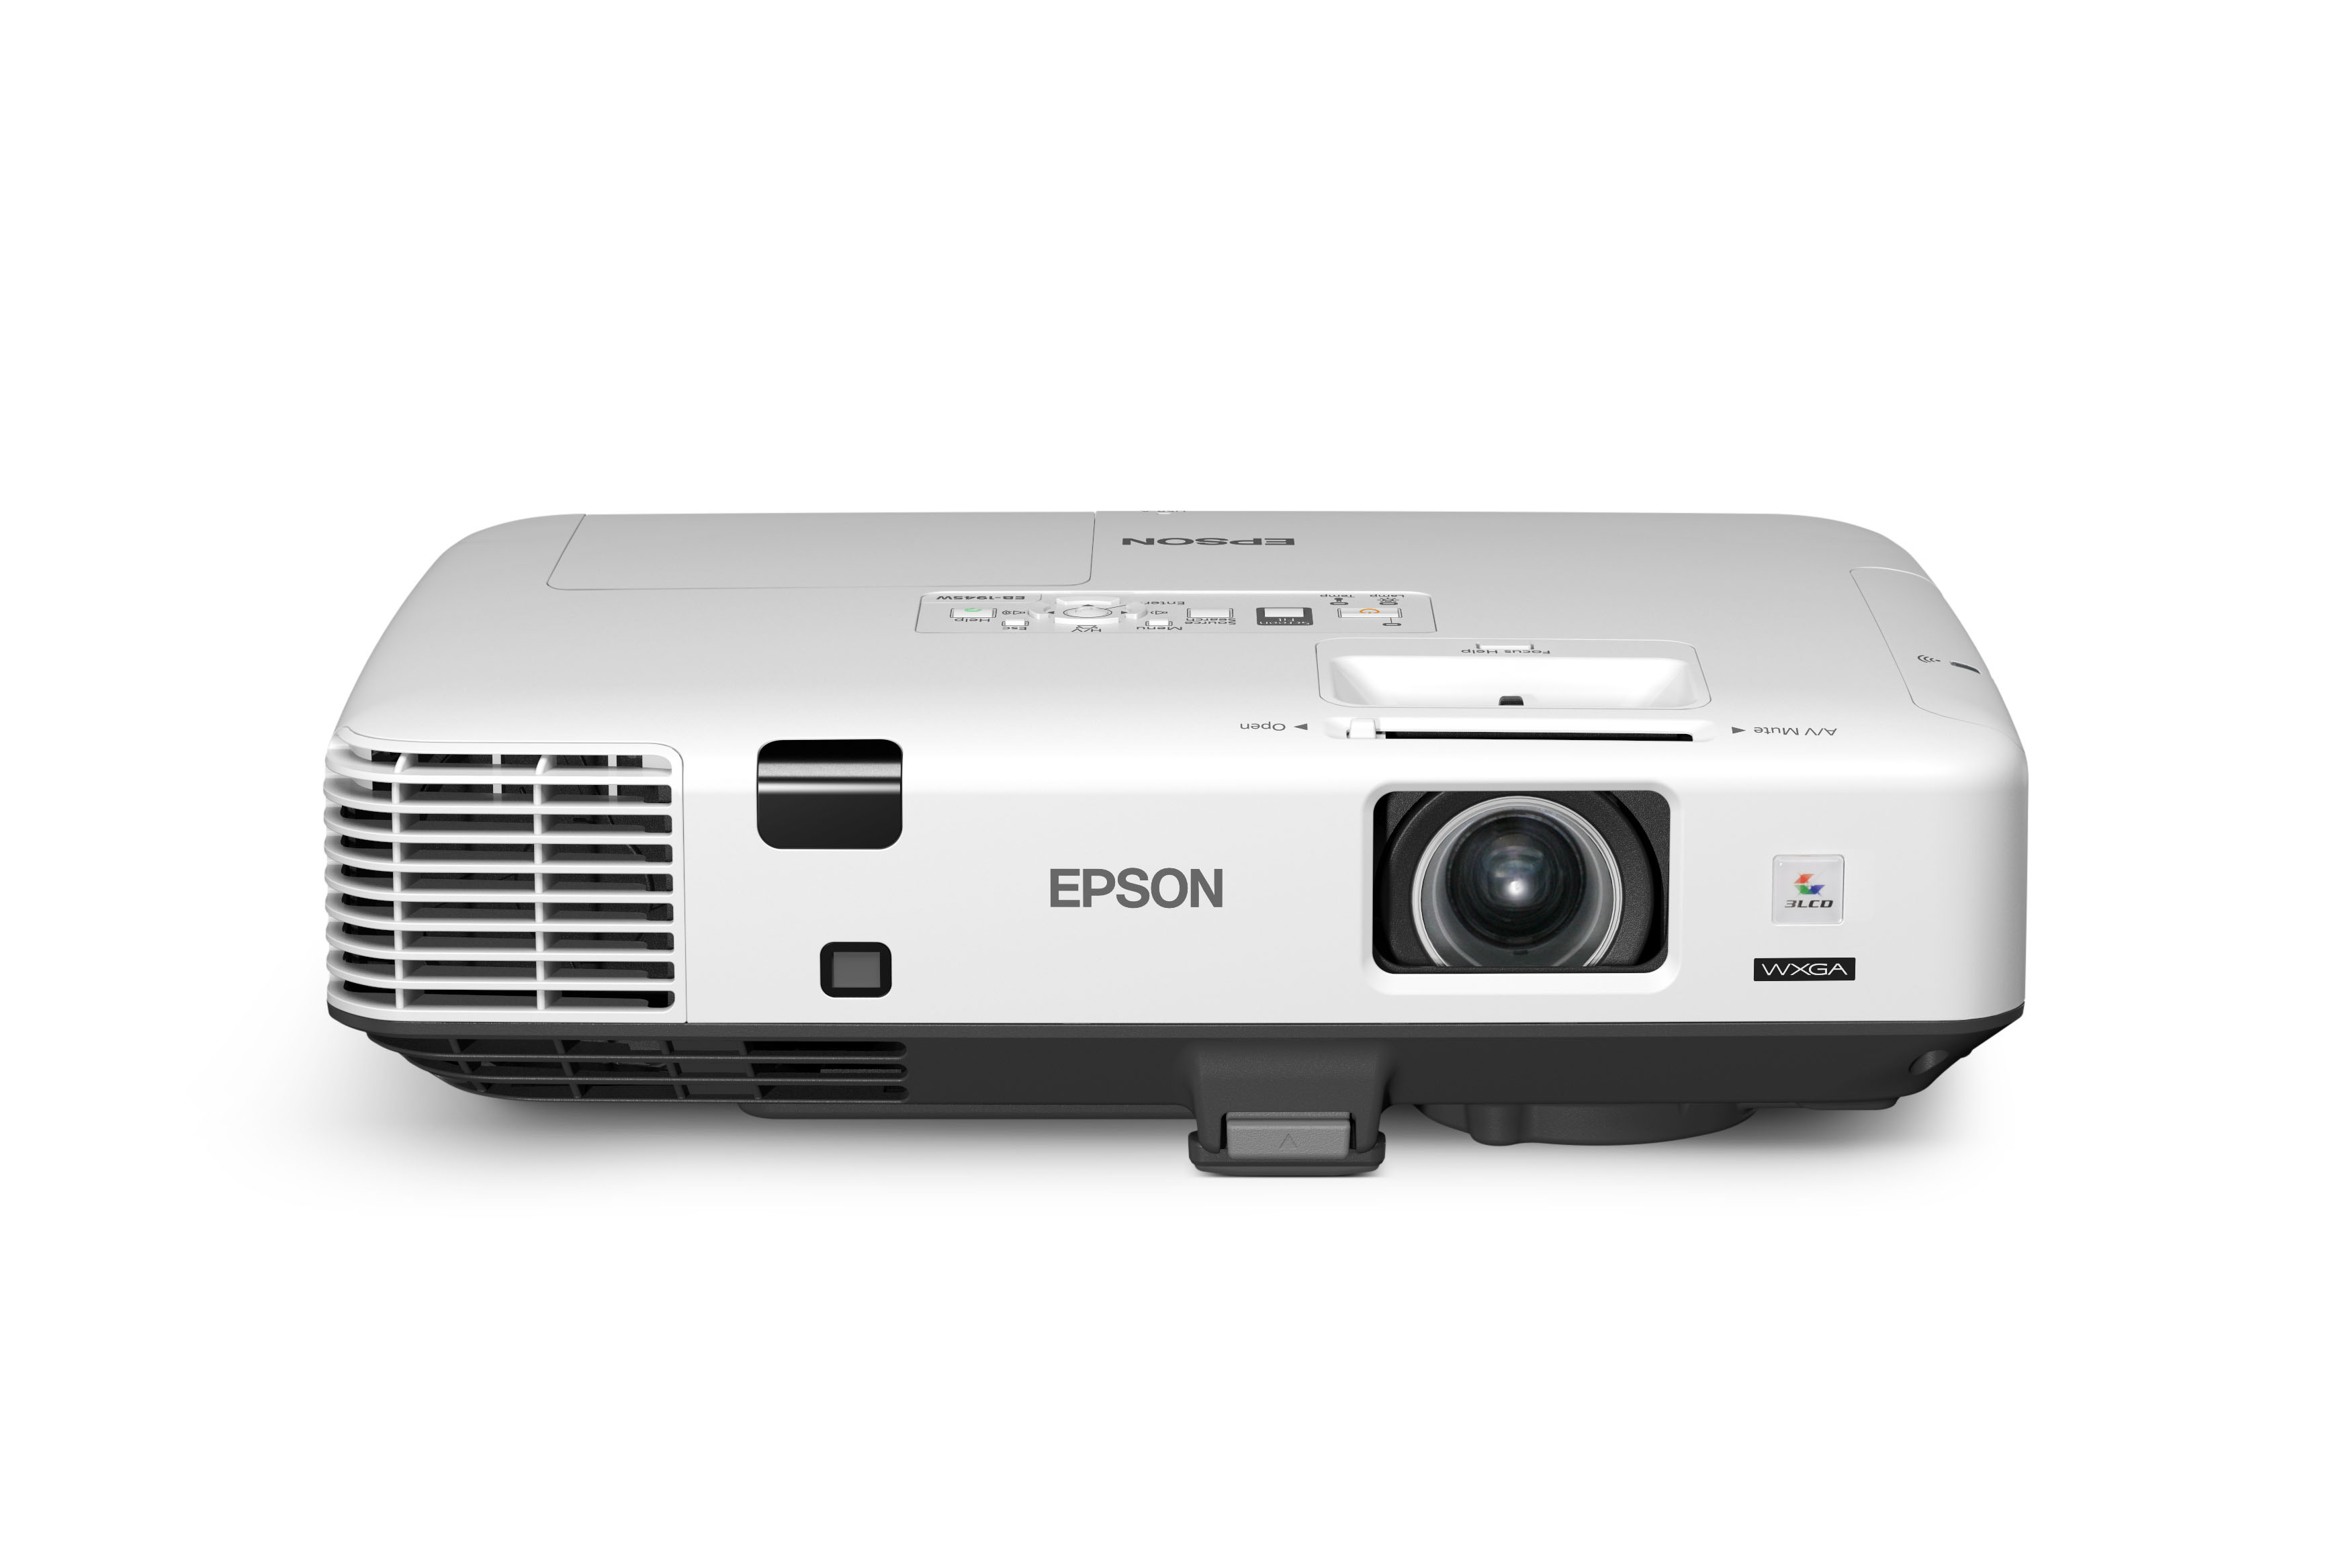 how to connect iphone to epson projector